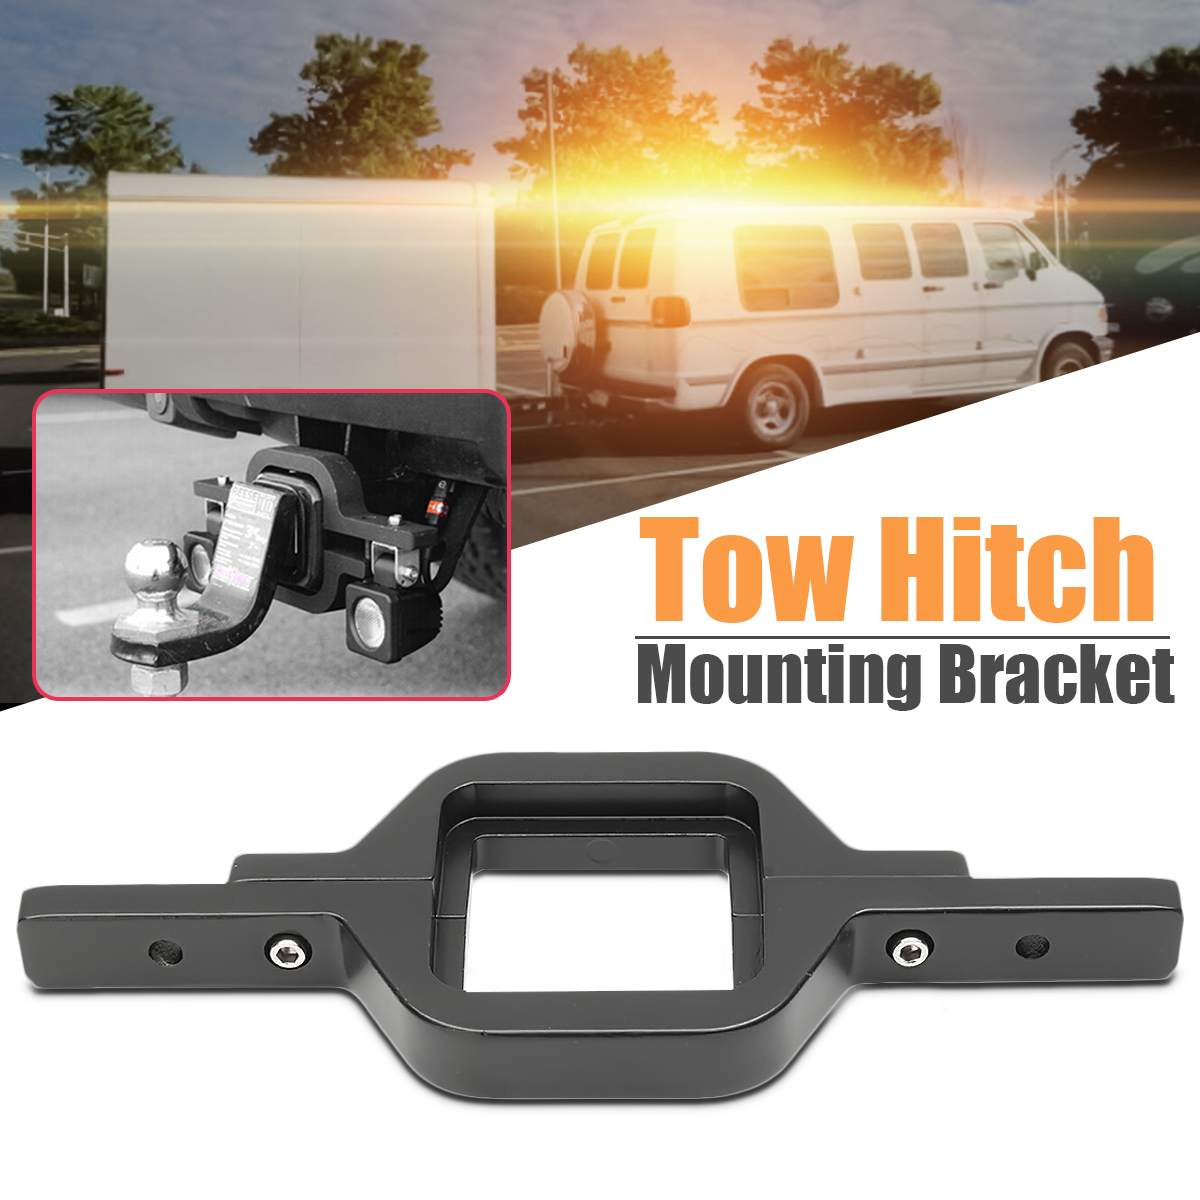 New Universal Car Truck SUV Trailer Tow Hitch Mounting Bracket Holder For Dual LED Backup Light For Audi For Lexus For Ford